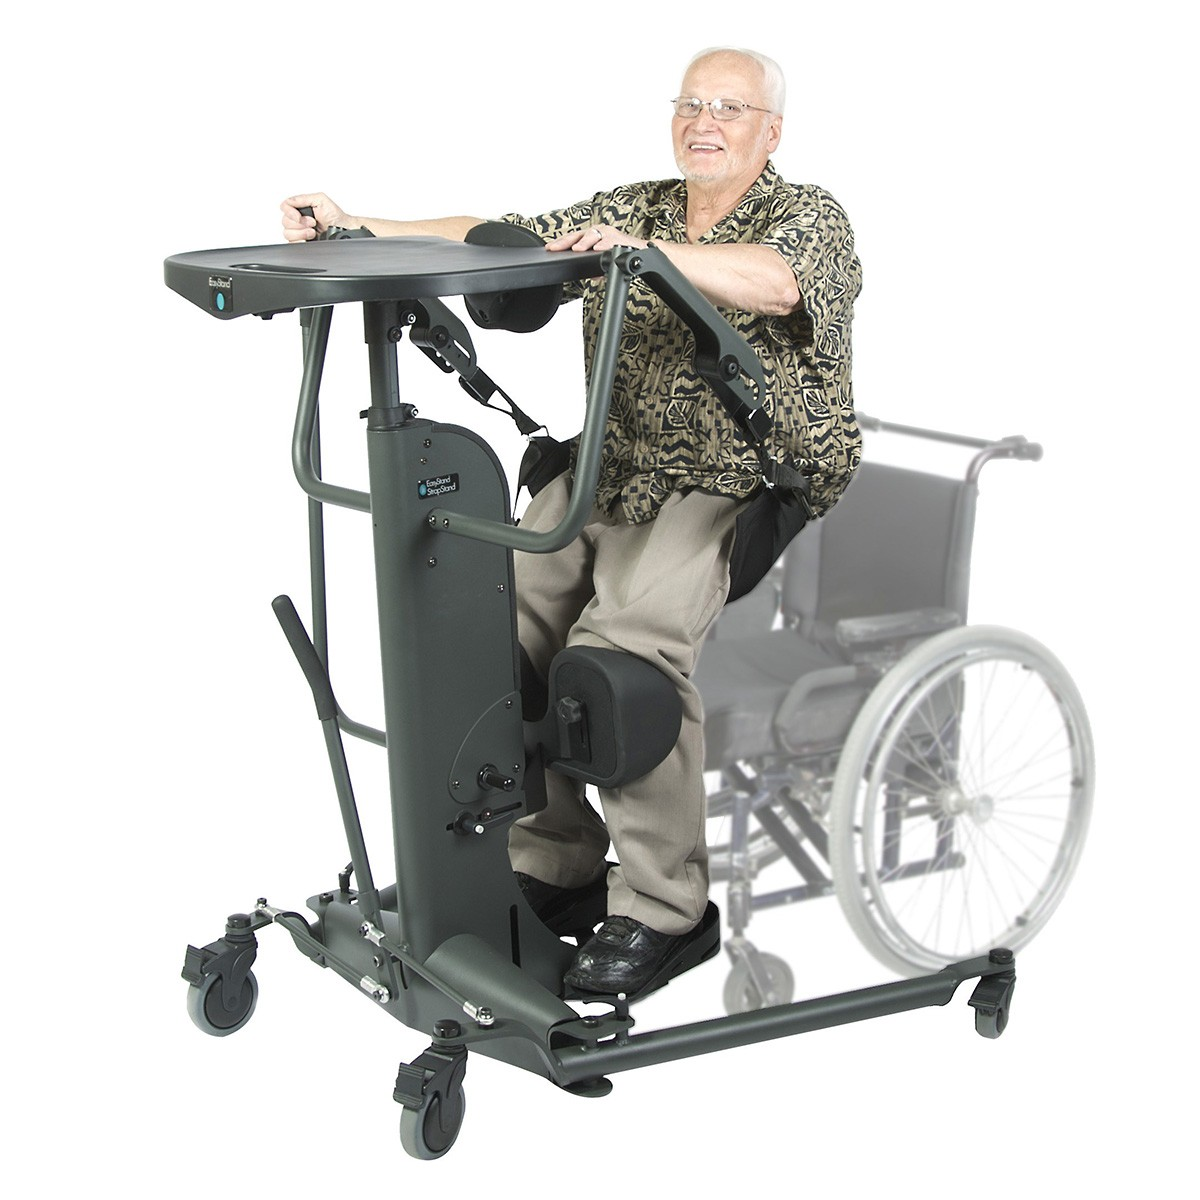 Man sitting on a EasyStand StrapStand